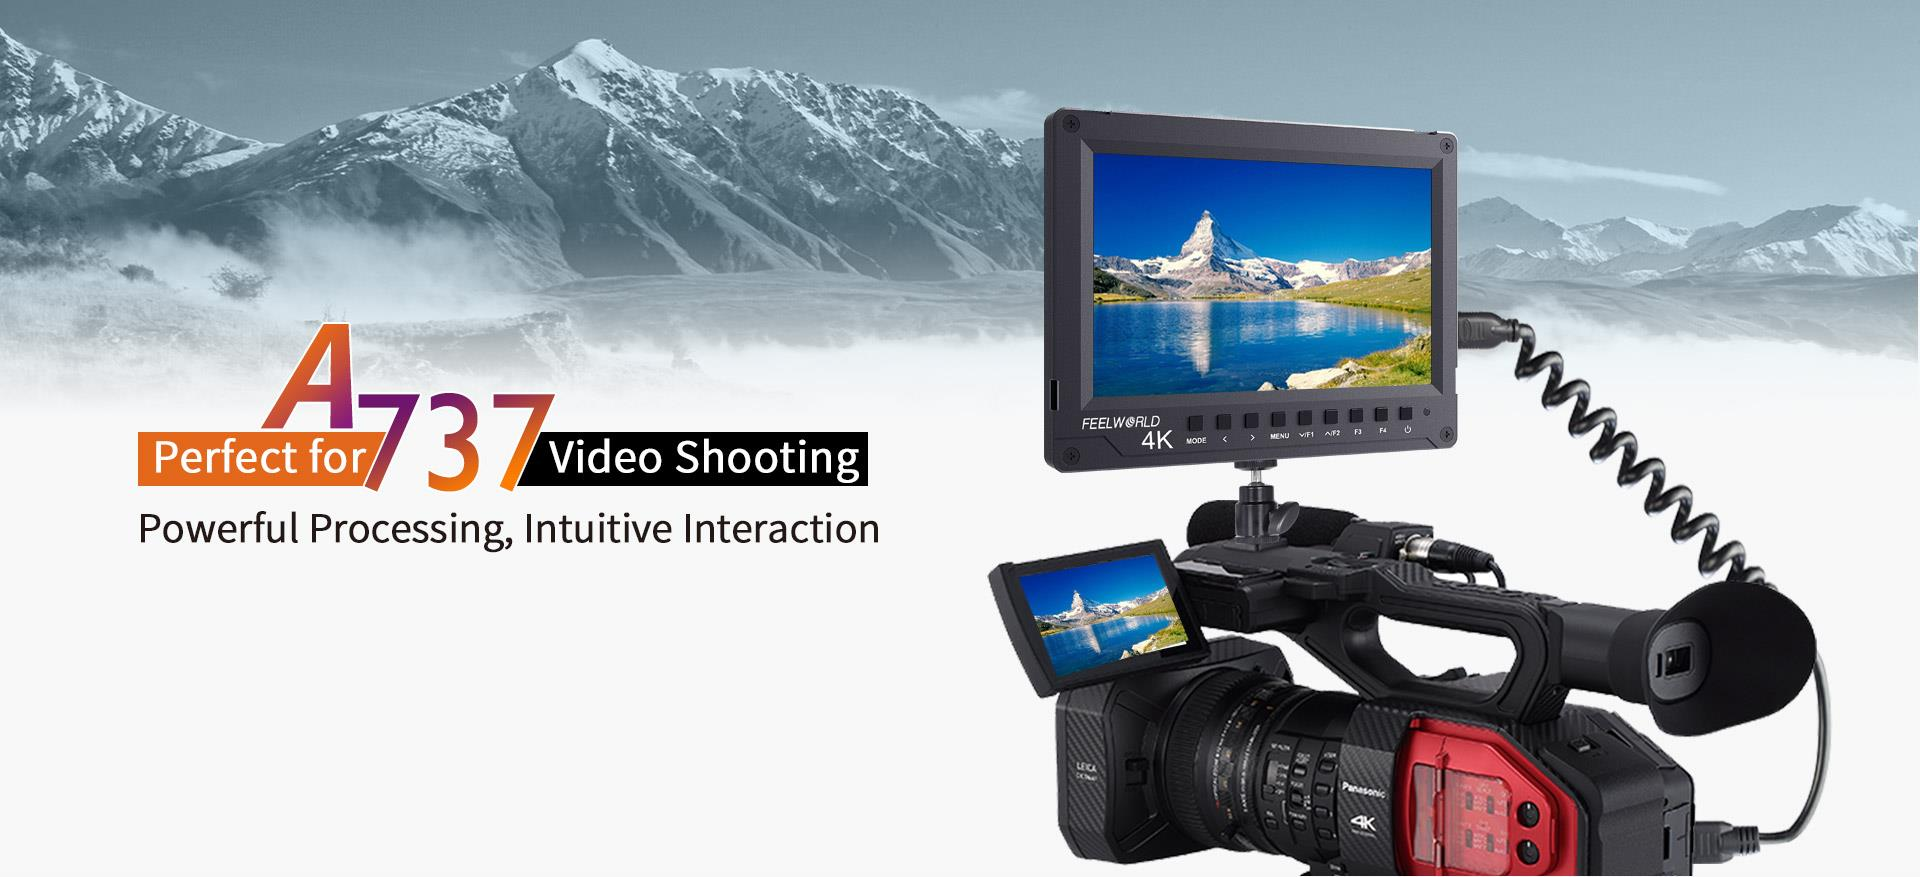 7 inch full hd lcd monitor for video shooting